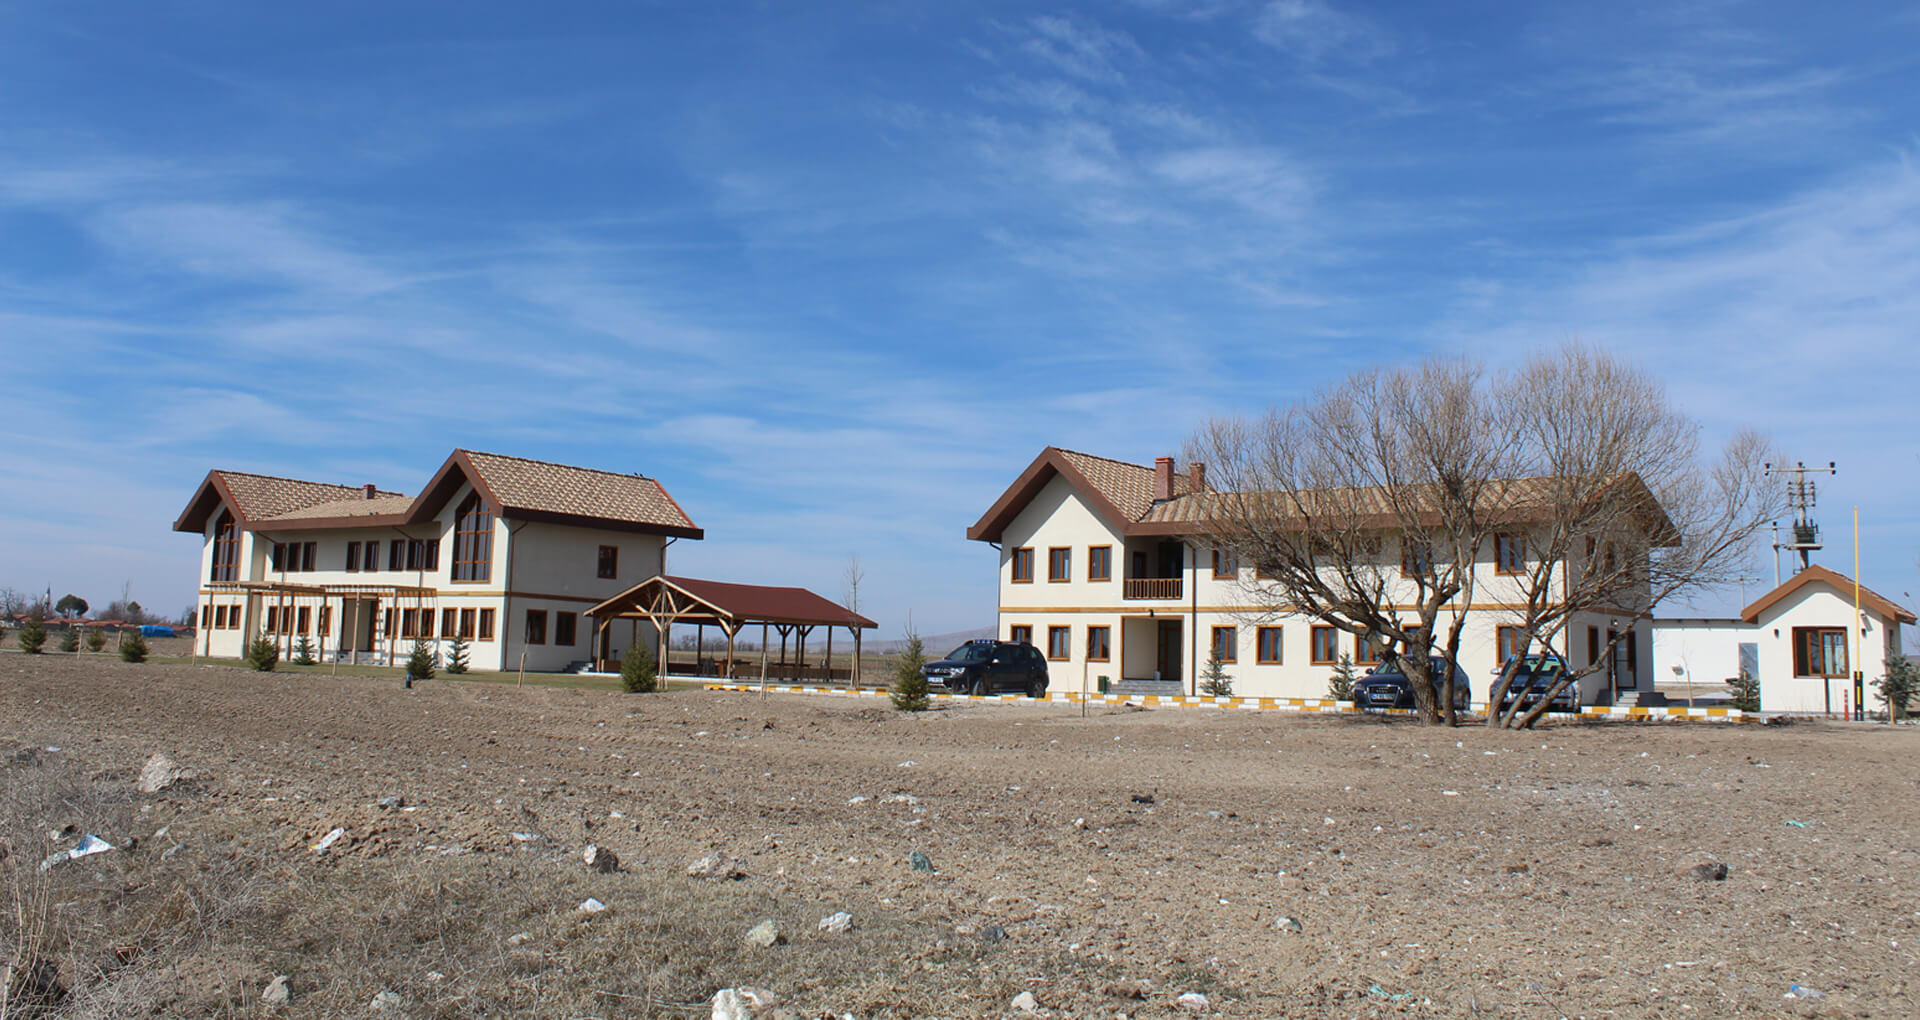 Adatarım Farm Administrative and Accommodation Buildings